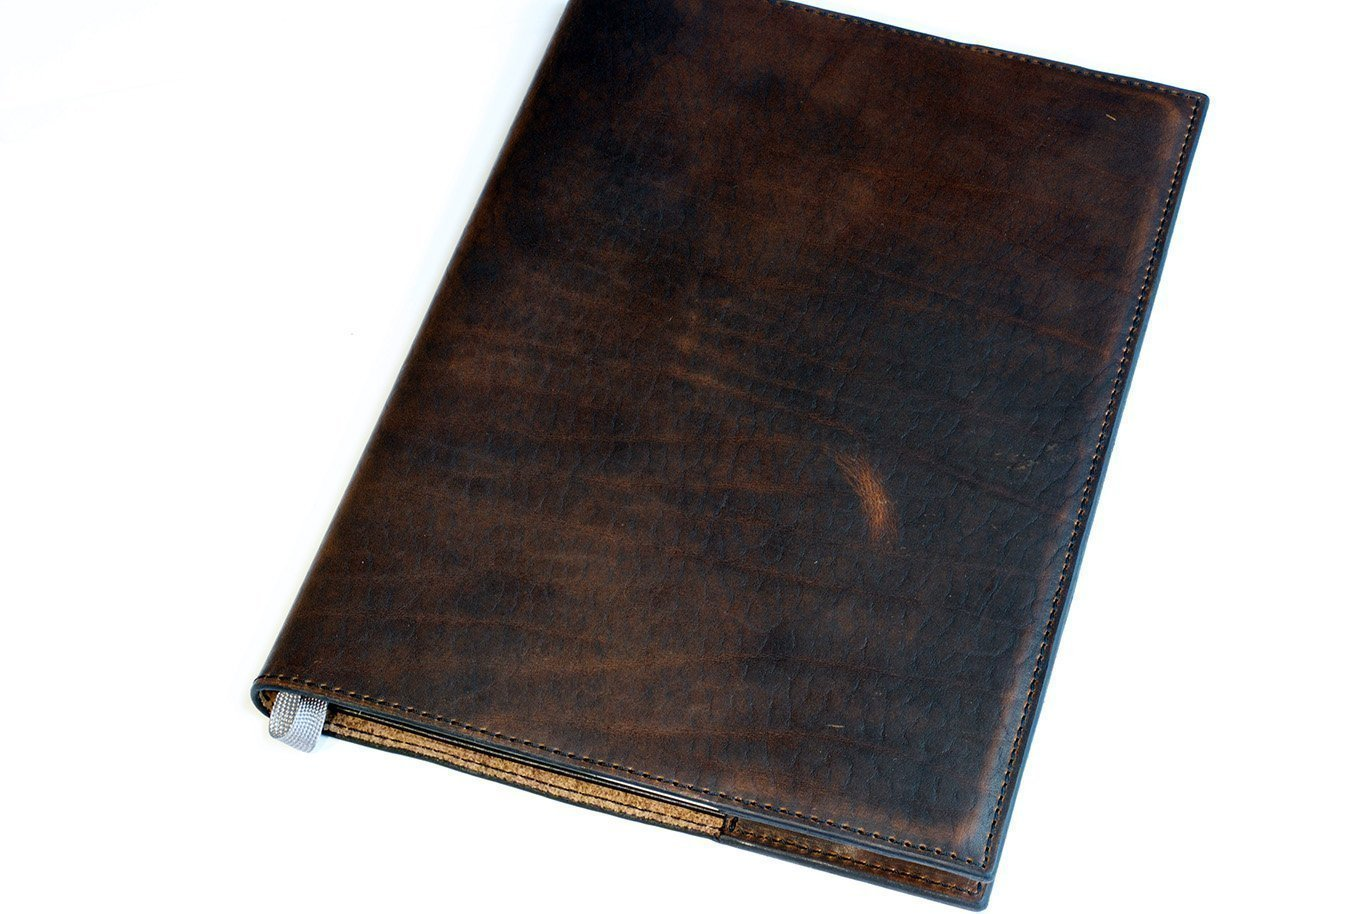 Art Sketchbook in Chestnut Leather Cover with Black Stitching, Moleskine Art Plus Sketchbook XLarge (12 x 8.5) A4 Personalized